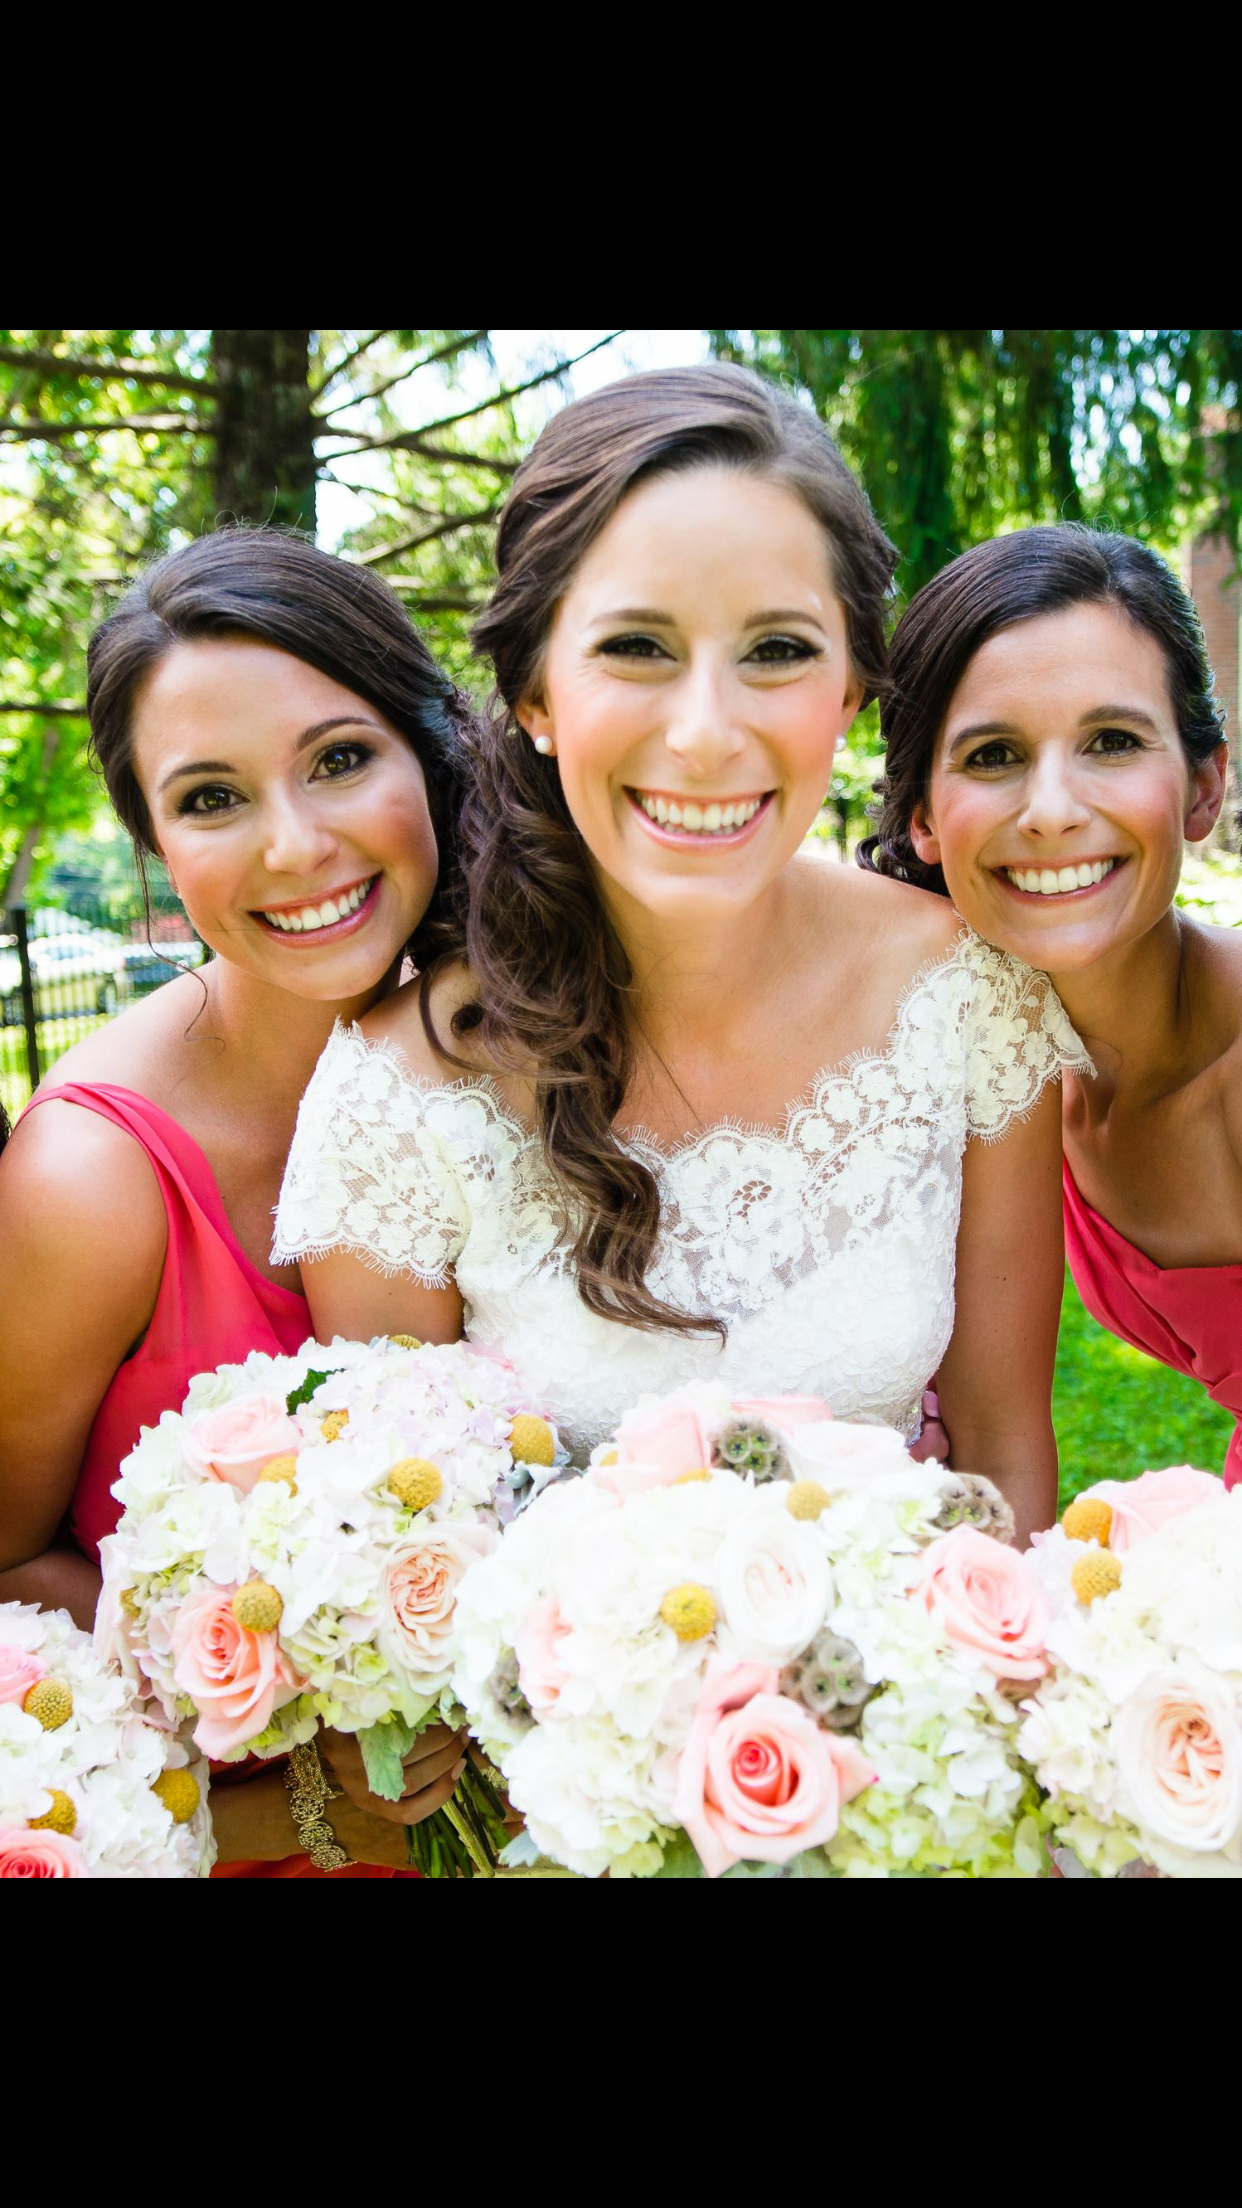 Bride and bridesmaids in red